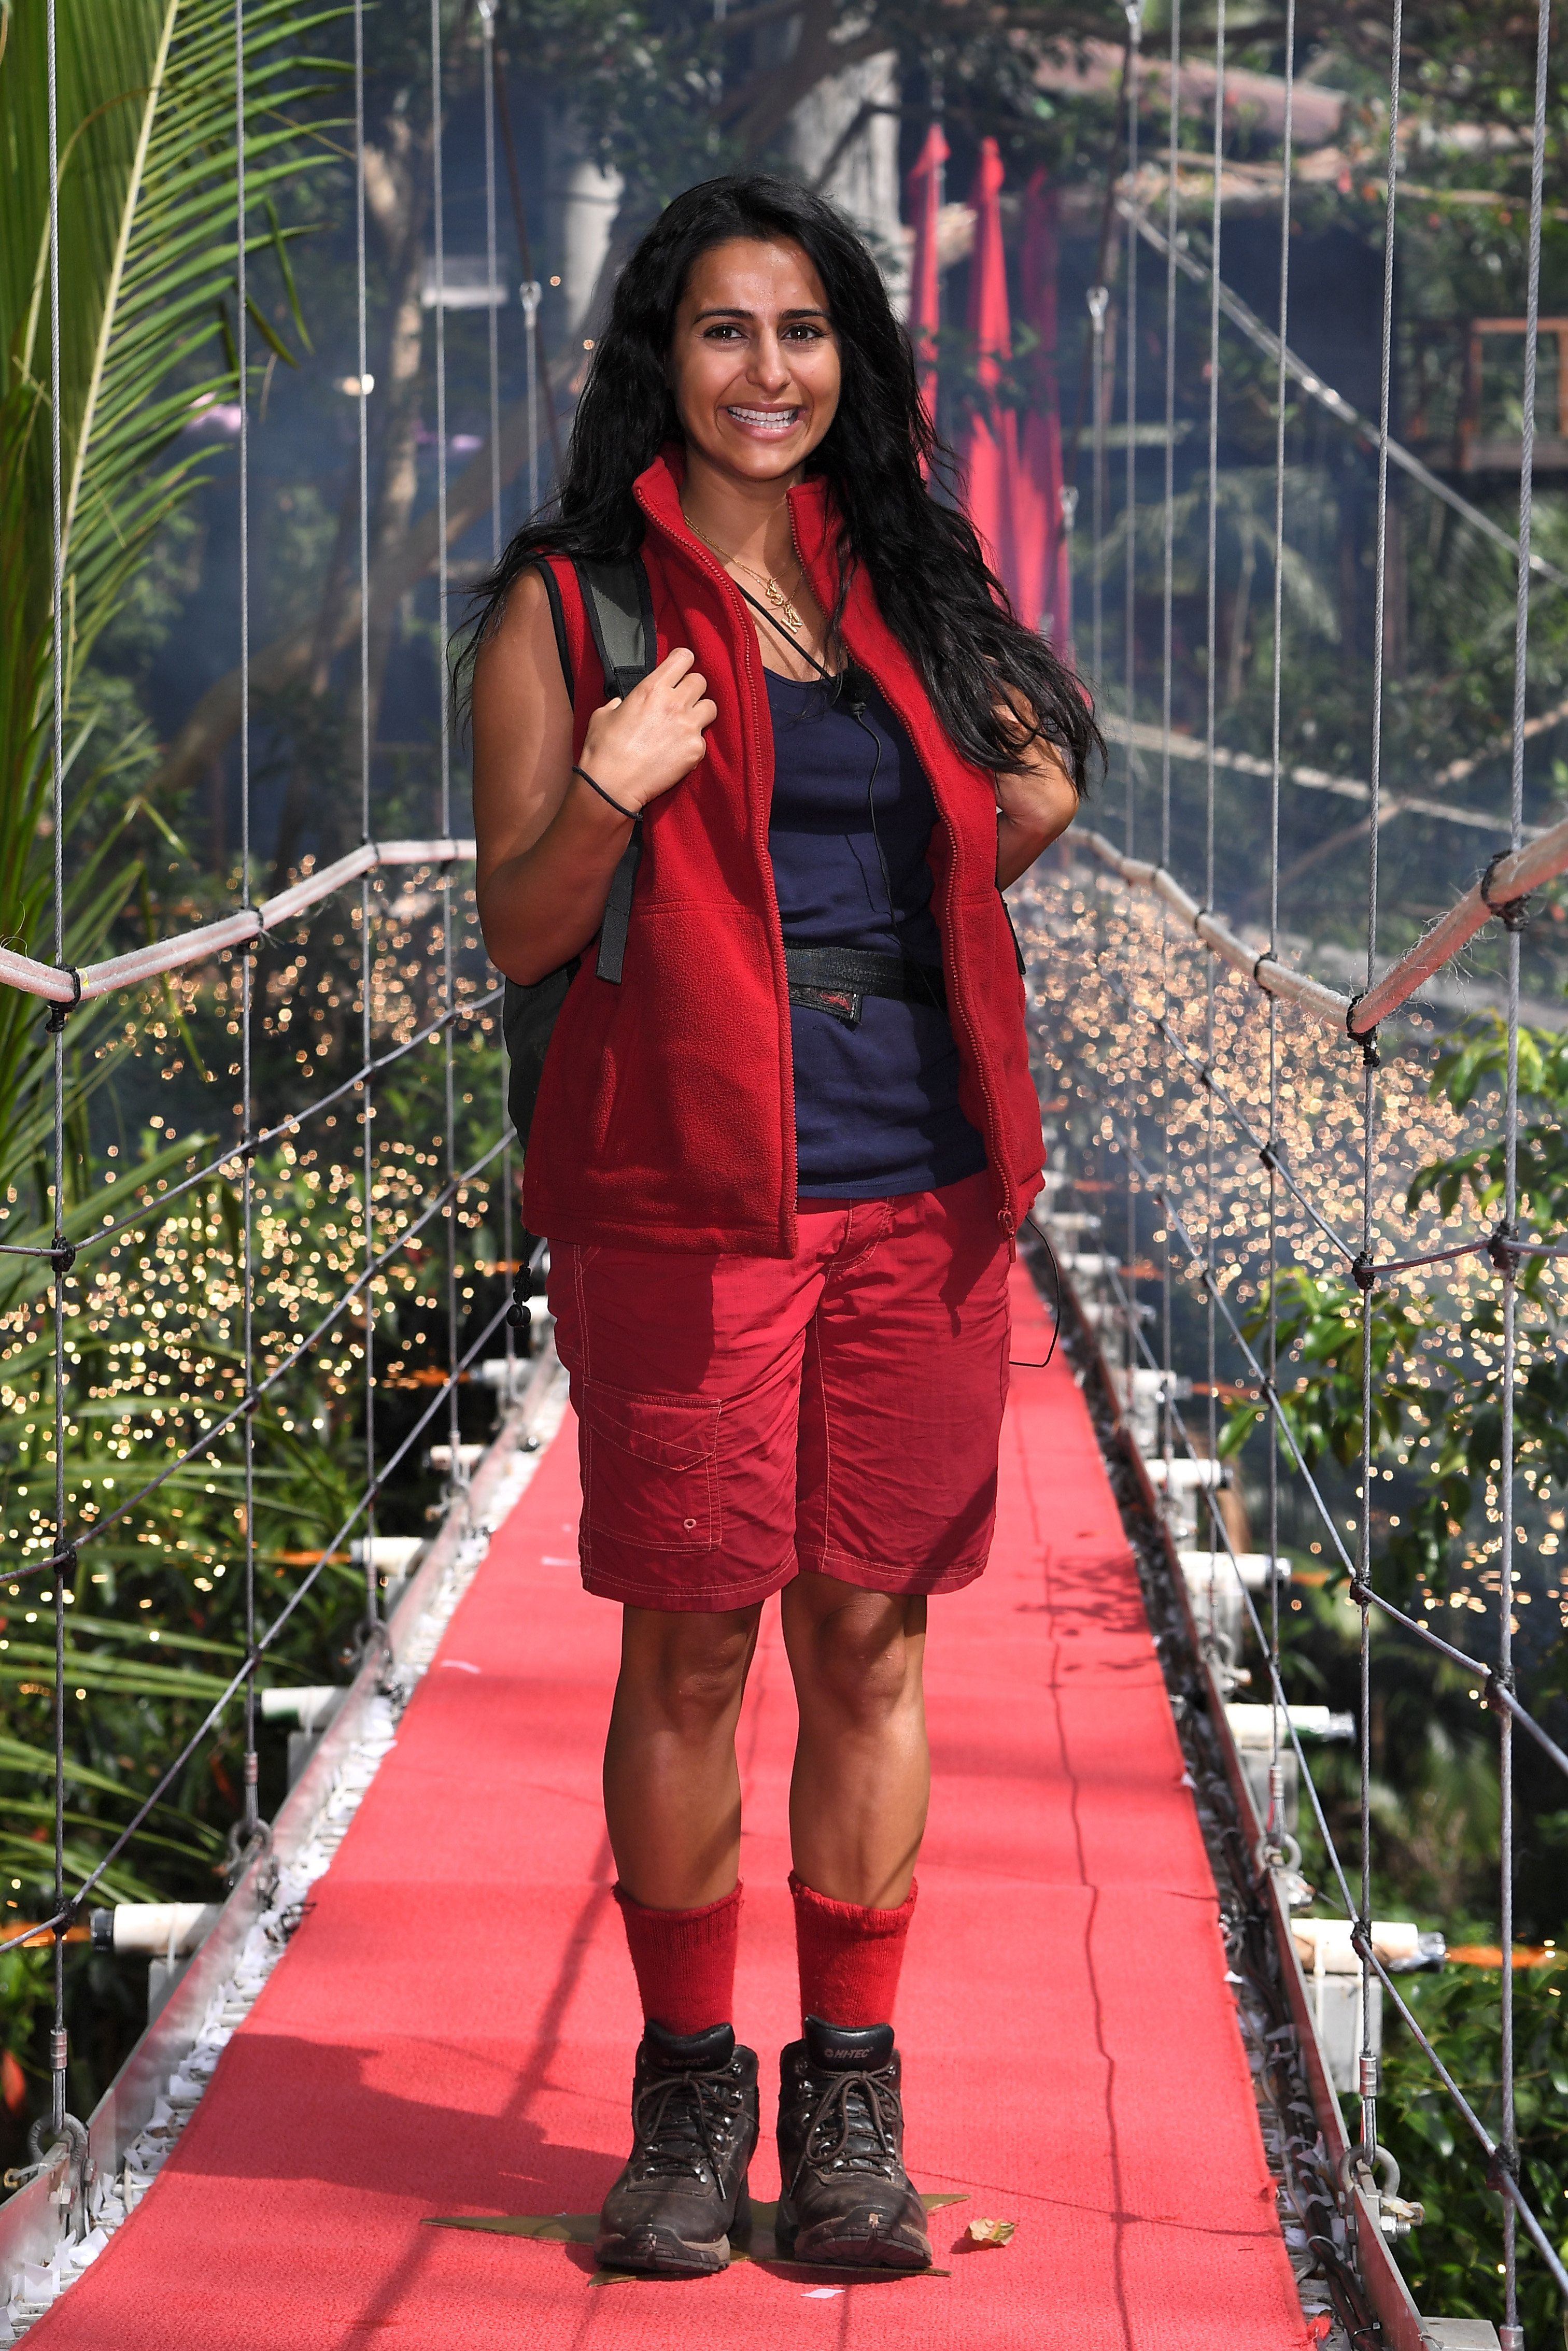 Sair Khan Is The Third Star To Be Voted Off 'I'm A Celebrity', But Viewers Spot Something